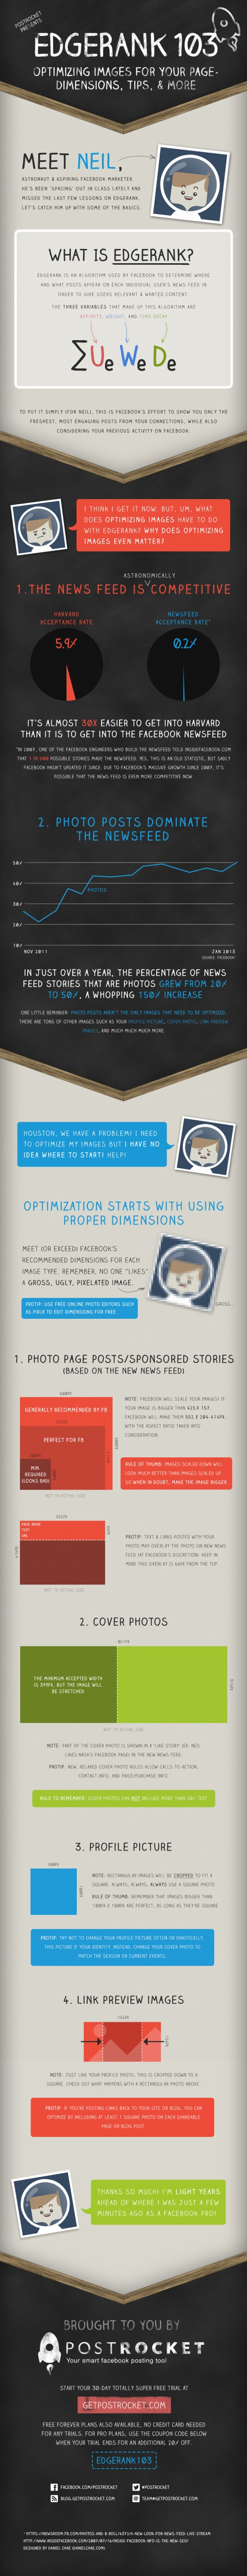 [INFOGRAPHIC] Facebook EdgeRank 103 – Optimizing Images for Your Facebook Page | PostRocket Blog